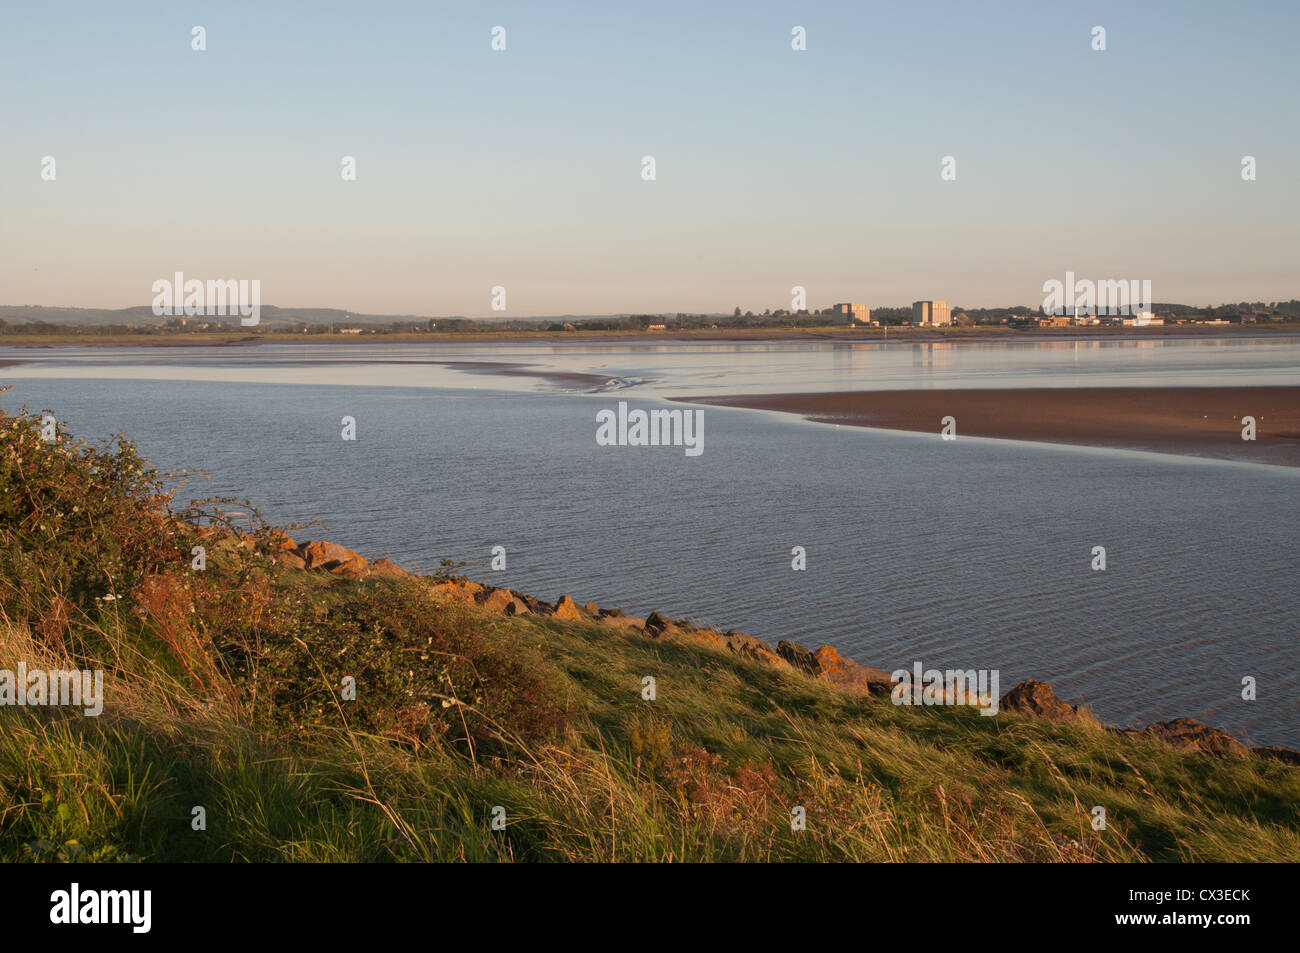 River Severn at low tide in low sunlight with grassy bank power station in background - Stock Image